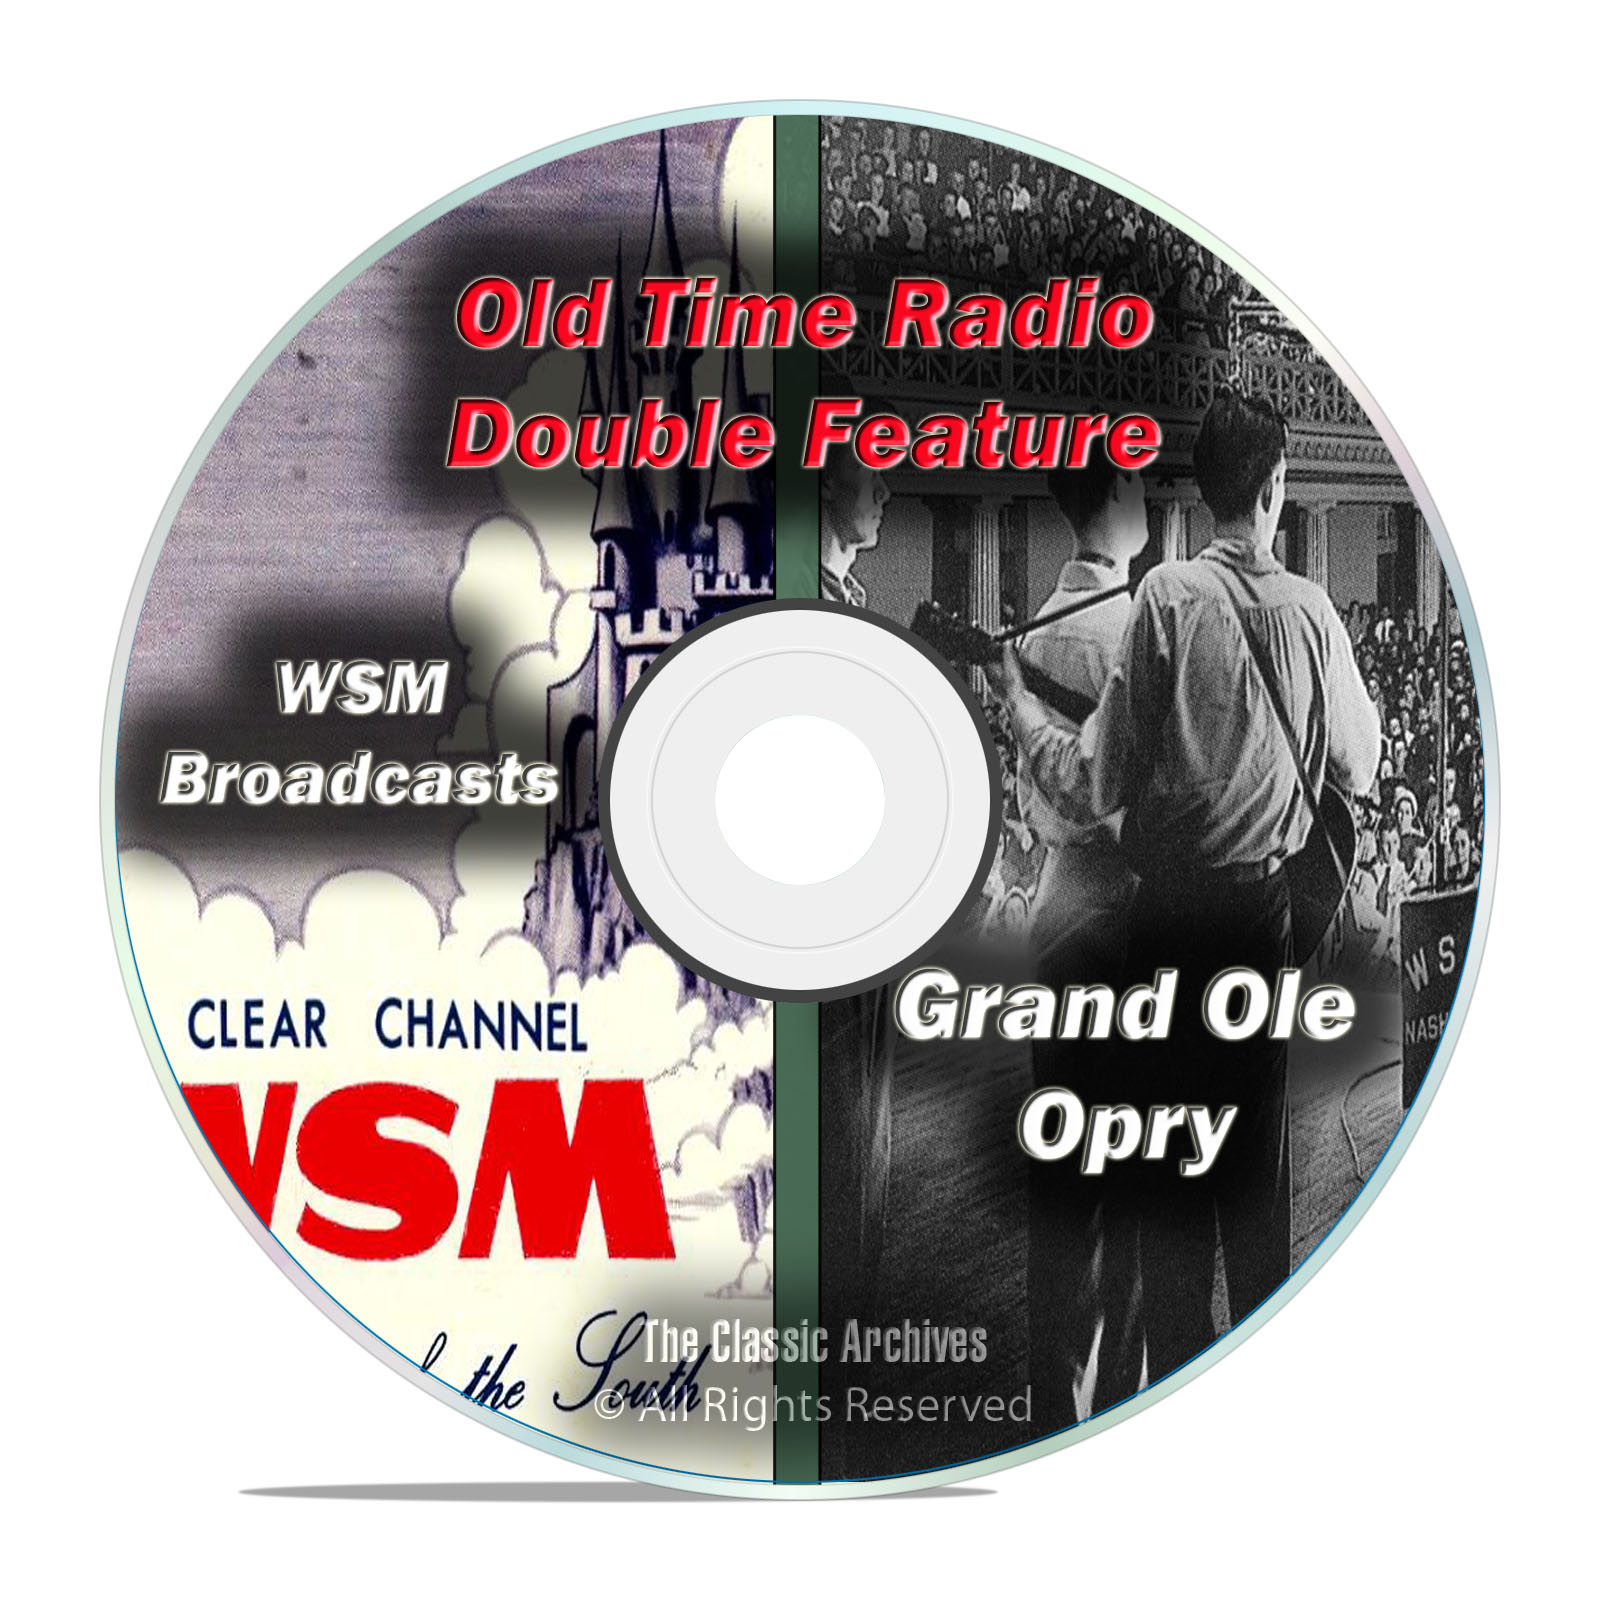 The Grand Ole Opry, 440 CLASSIC EPISODES, Music Old Time Radio, OTR, DVD - Click Image to Close